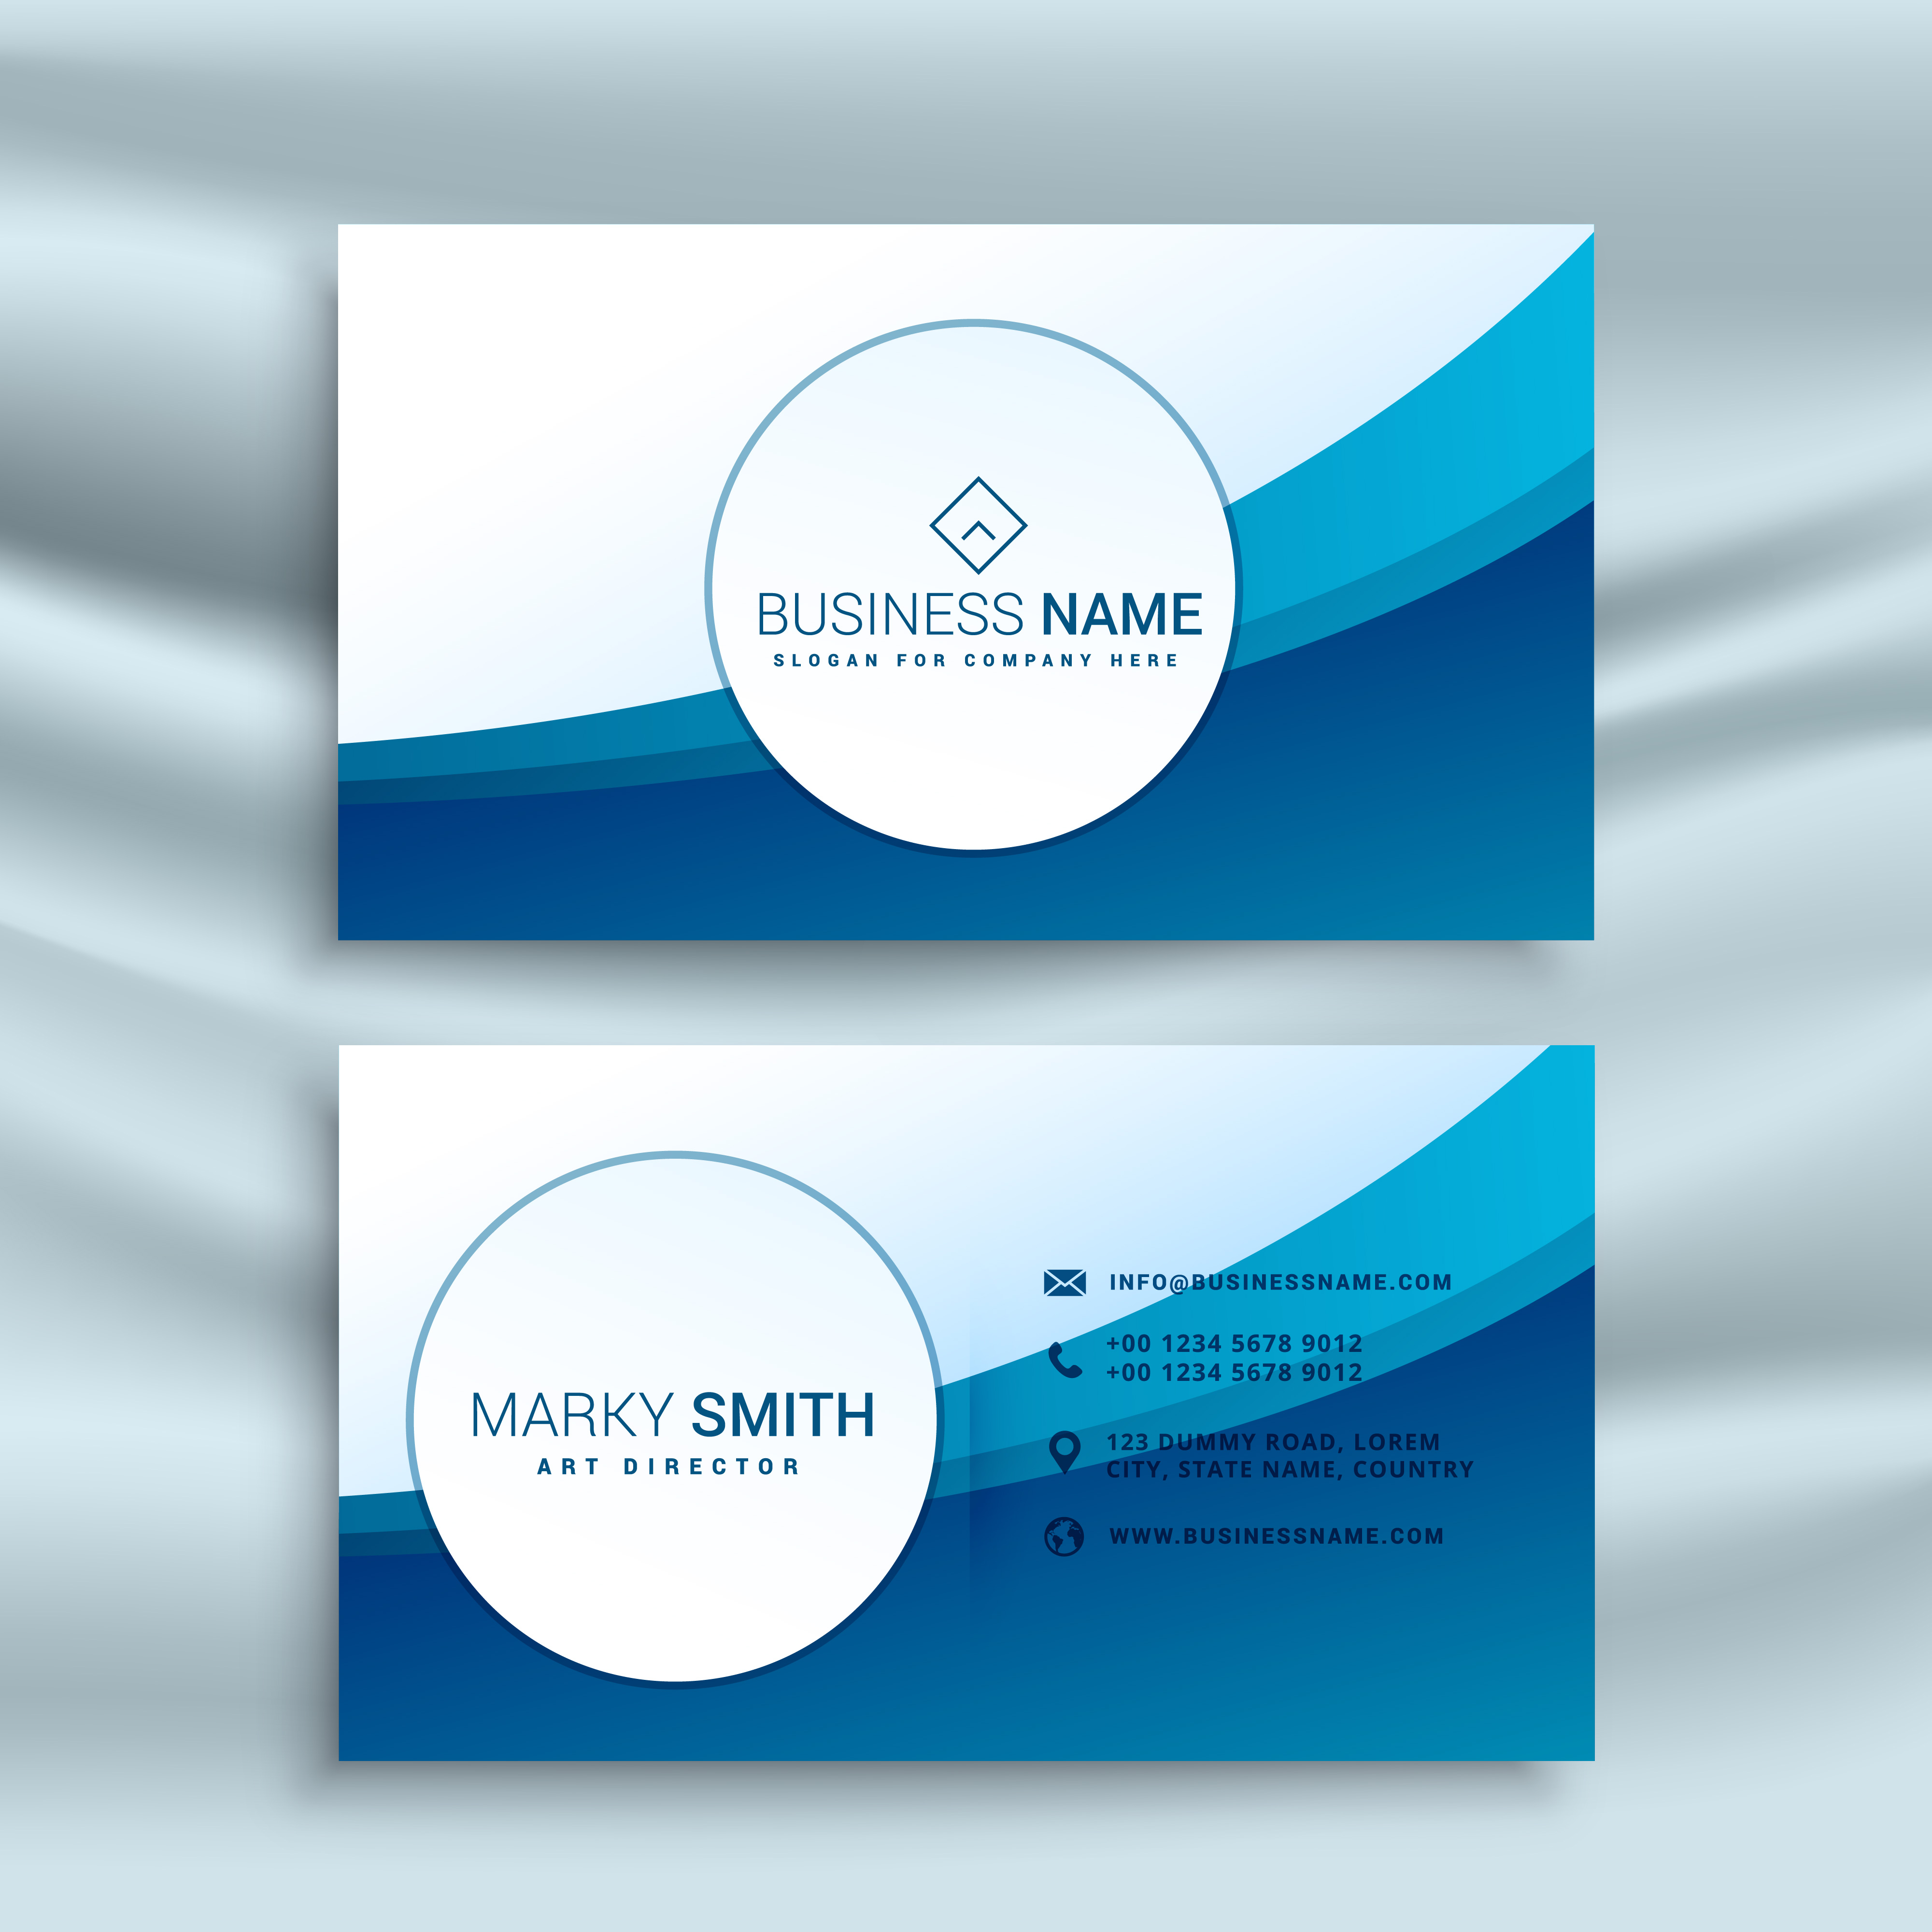 Blue Corporate Stationary Pack By Betty Design: Business Card Template With Blue Abstract Wave